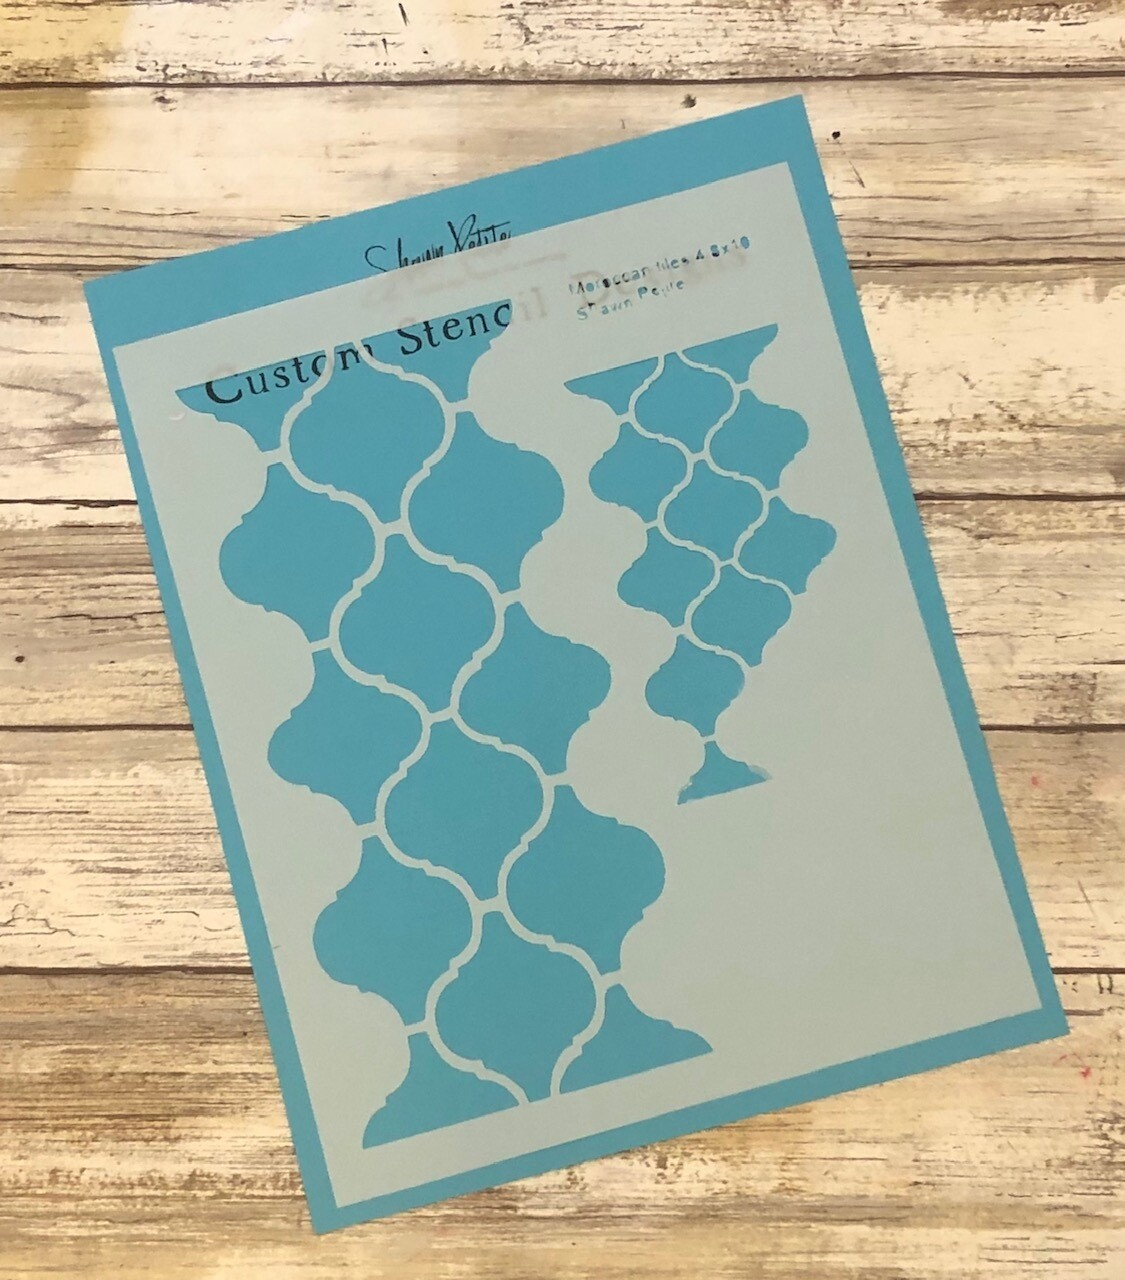 Moroccan Tiles 4 8x10 clearance stencil